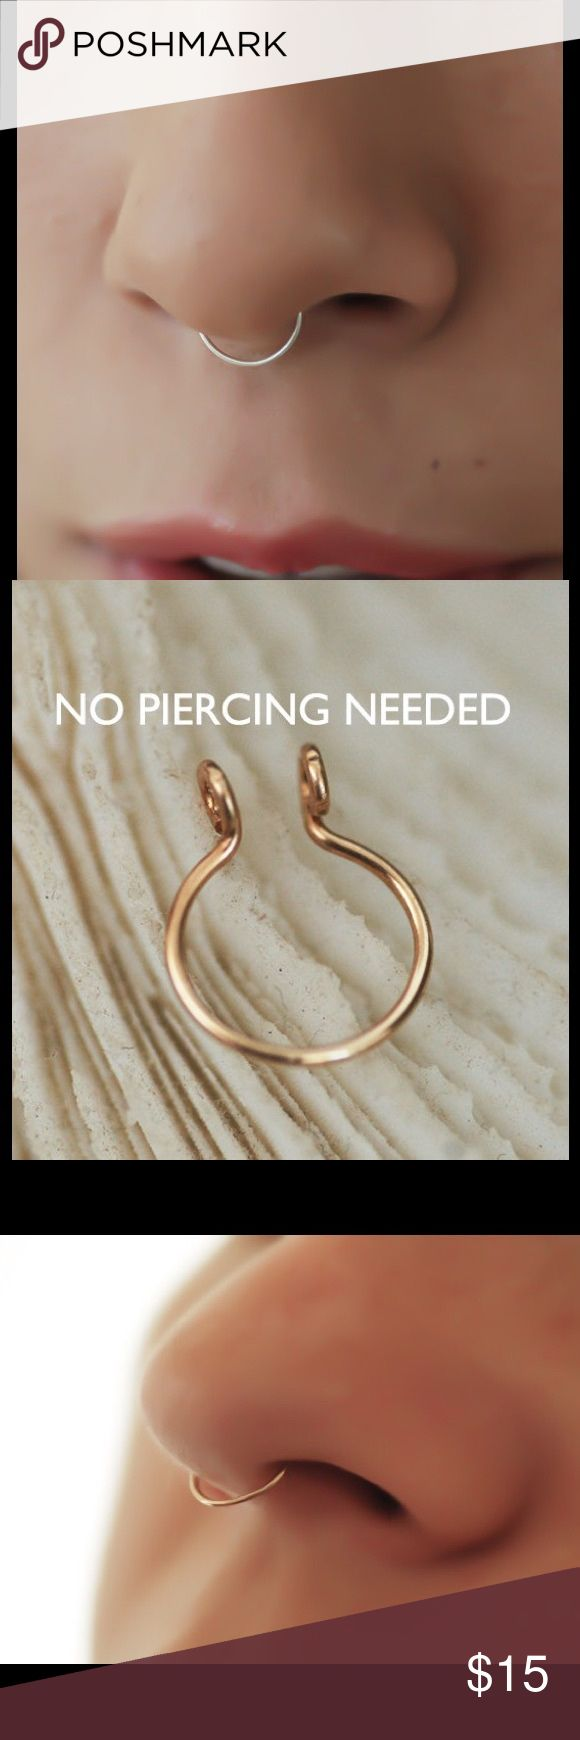 Skinny fake Septum ring A dainty fake/faux Septum ring made of either 925 Sterling silver, 14k yellow or rose gold filled. 20 gauge, 10mm in diameter. nejd Jewelry Necklaces